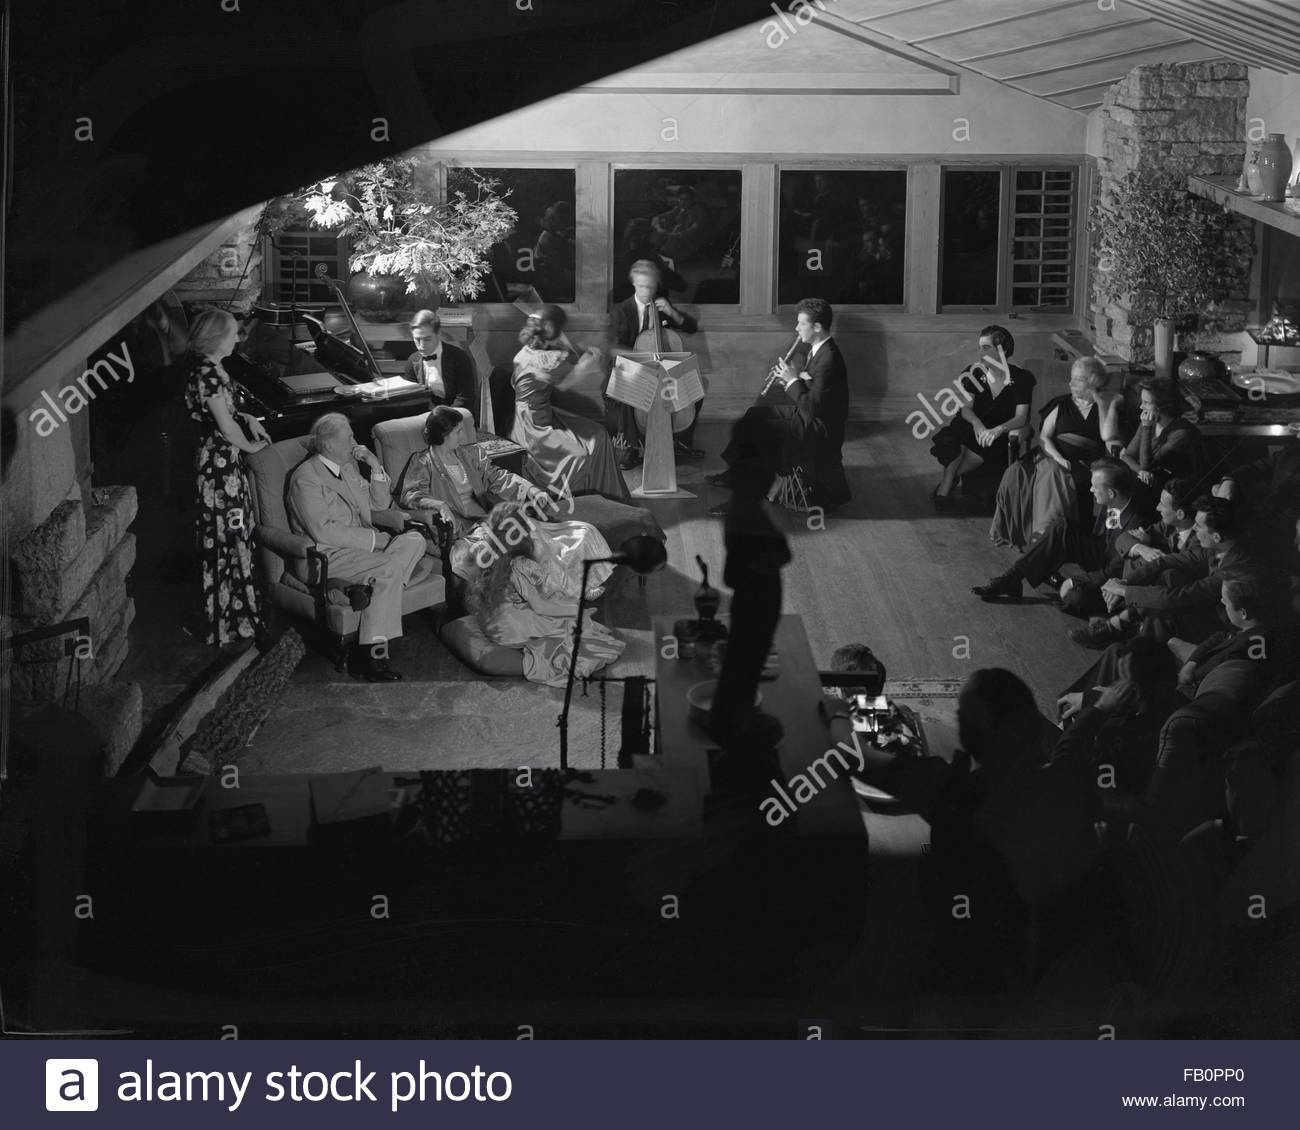 Portraits of Frank Lloyd Wright and others at Taliesin East [graphic], 1937 Dec. Members of the Taliesin Fellowship - Stock Image